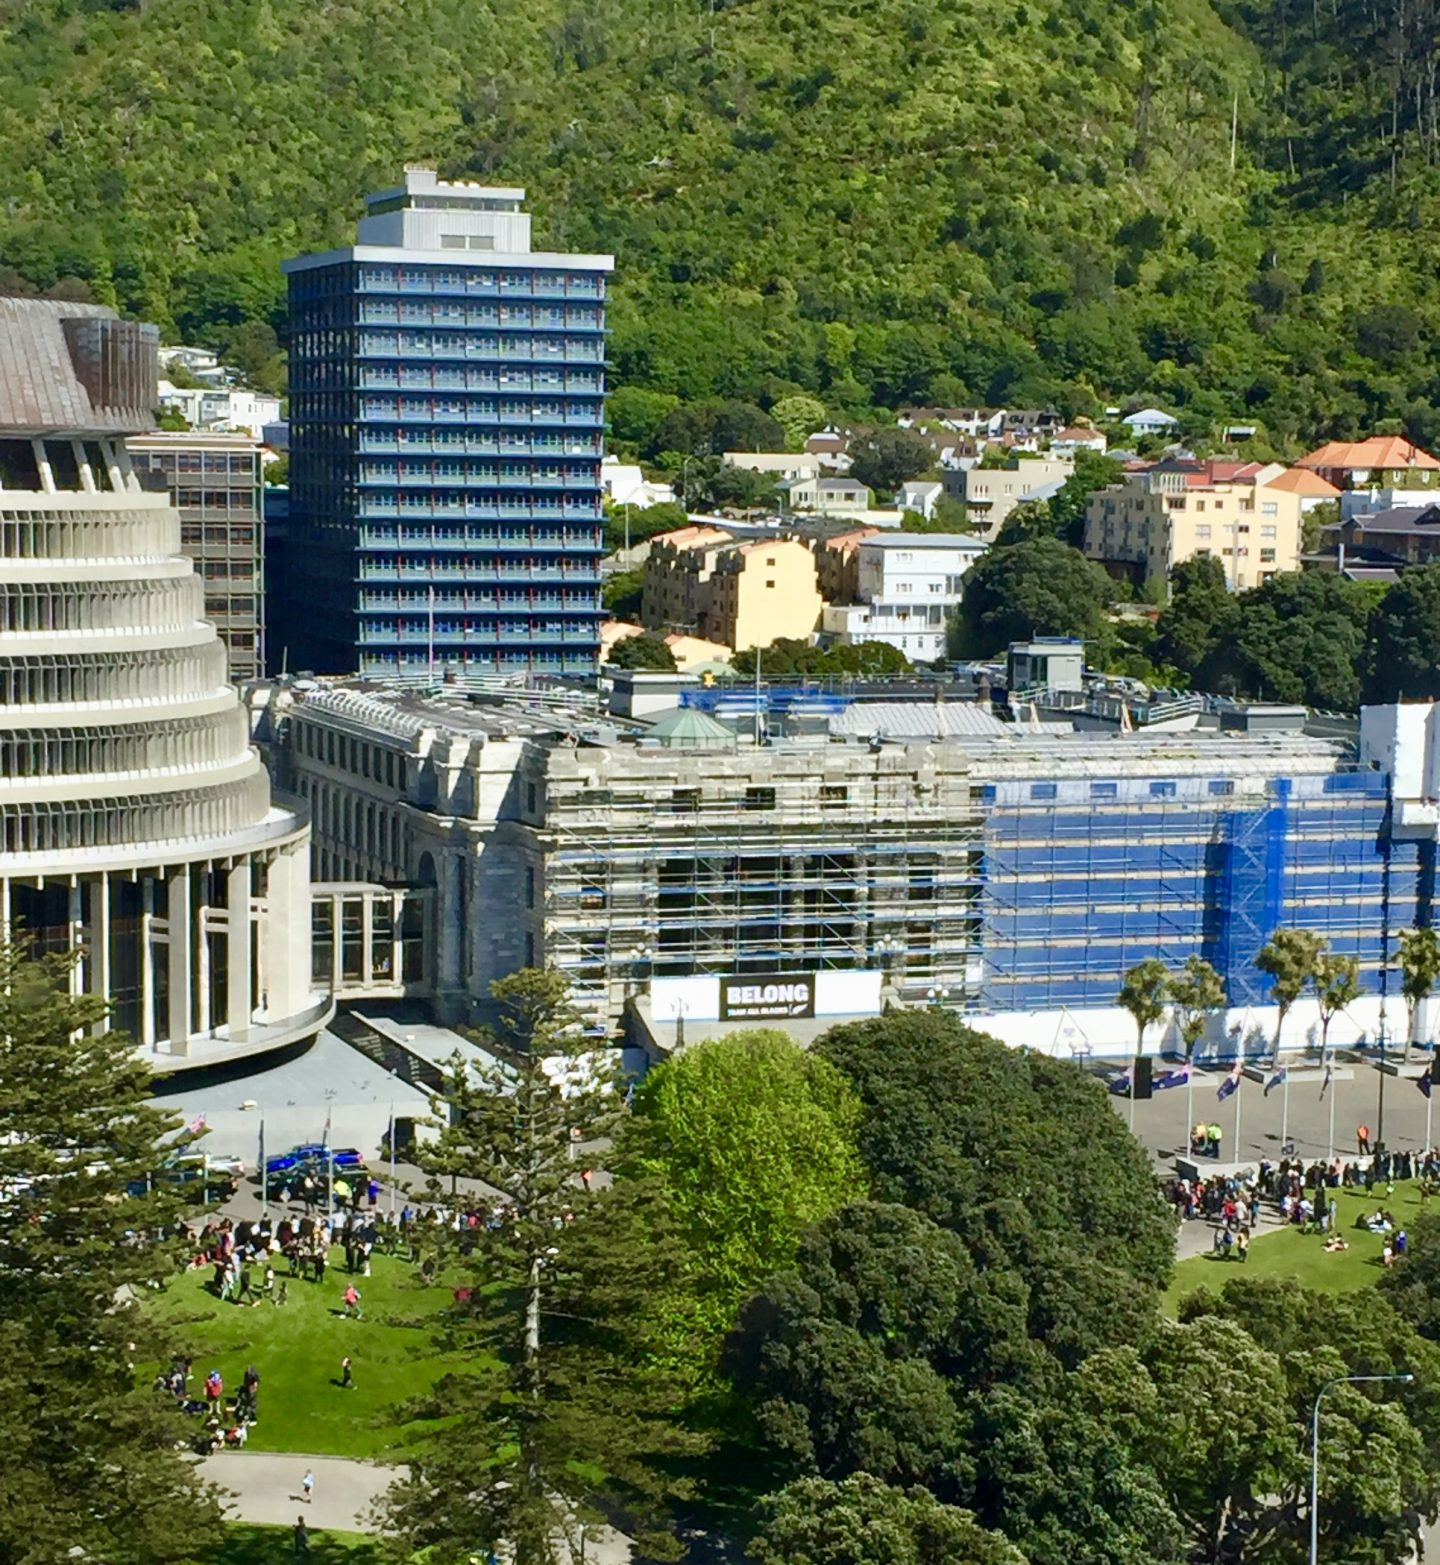 Guide to Wellington, Beginners guide, Tips and Tricks